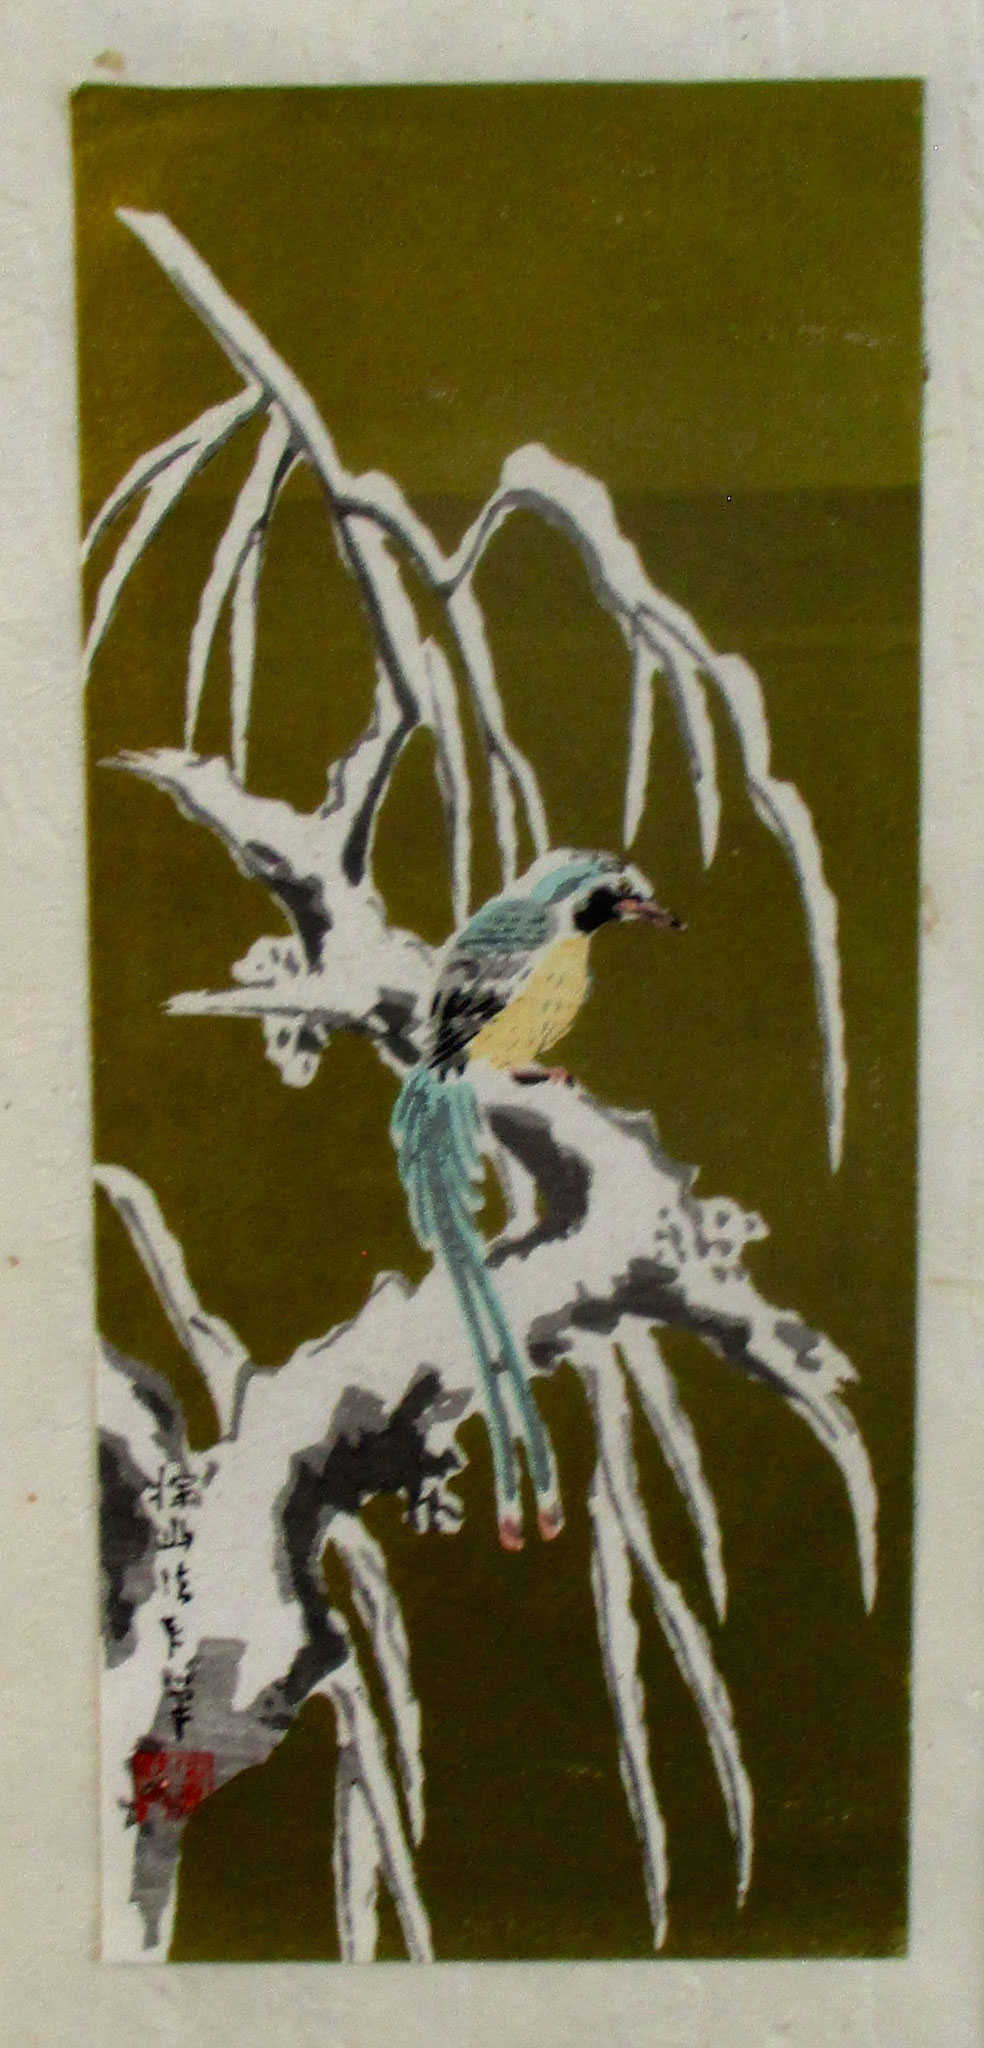 Parrot and Plum Tree オウムと梅の木 Vintage woodblock print, 11 x 14 matted, SOLD